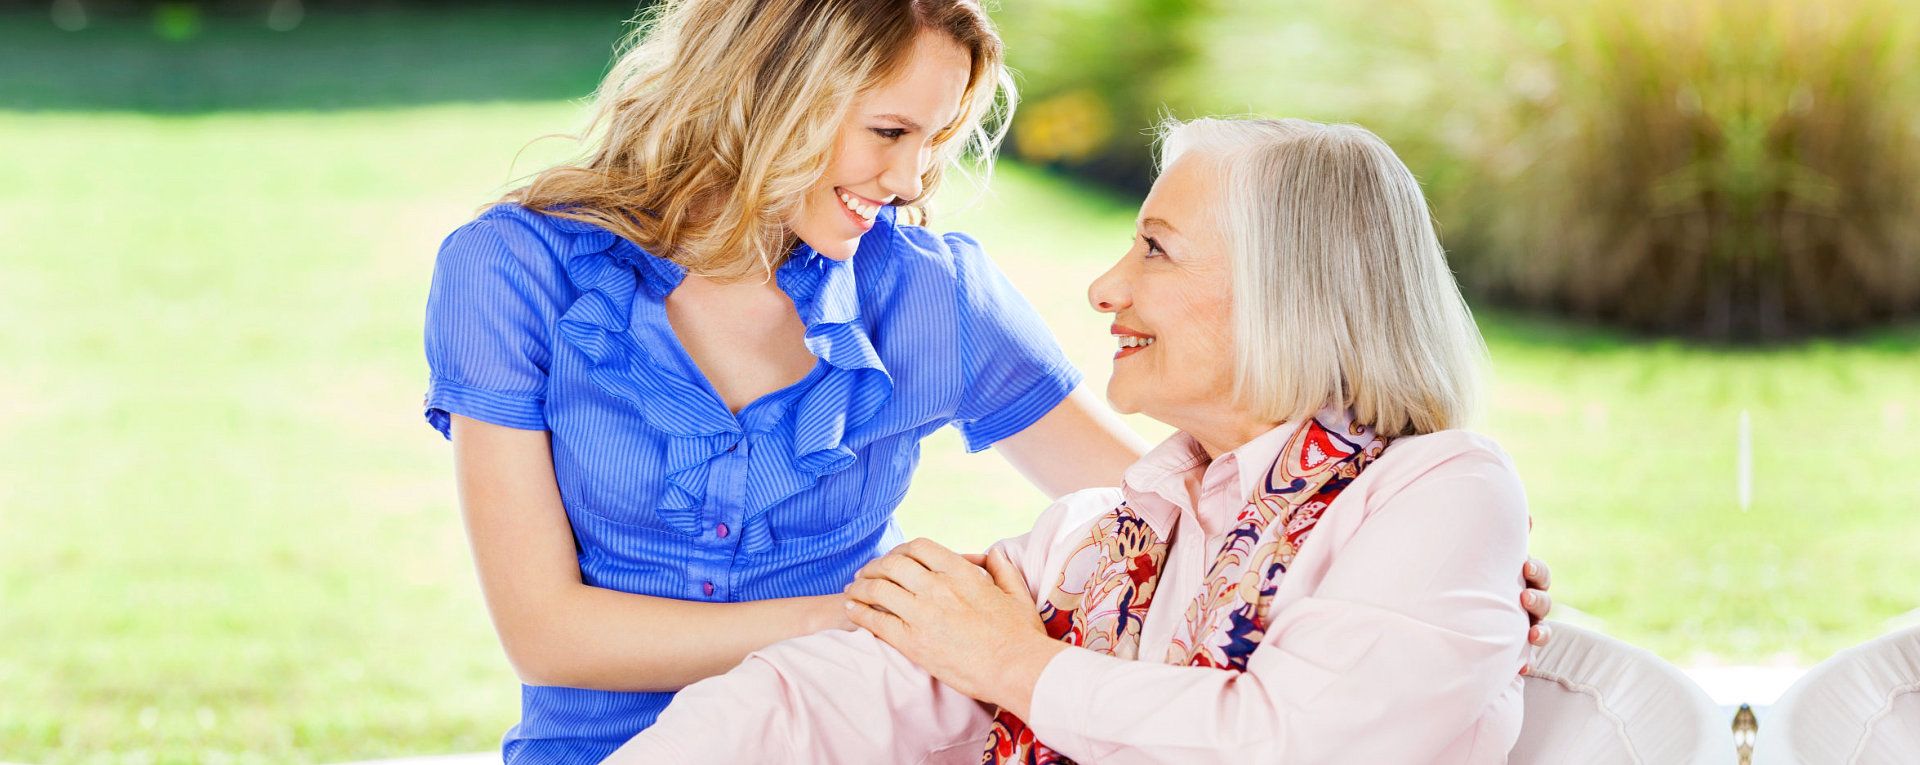 caregiver holding the hands of patient while looking at each other